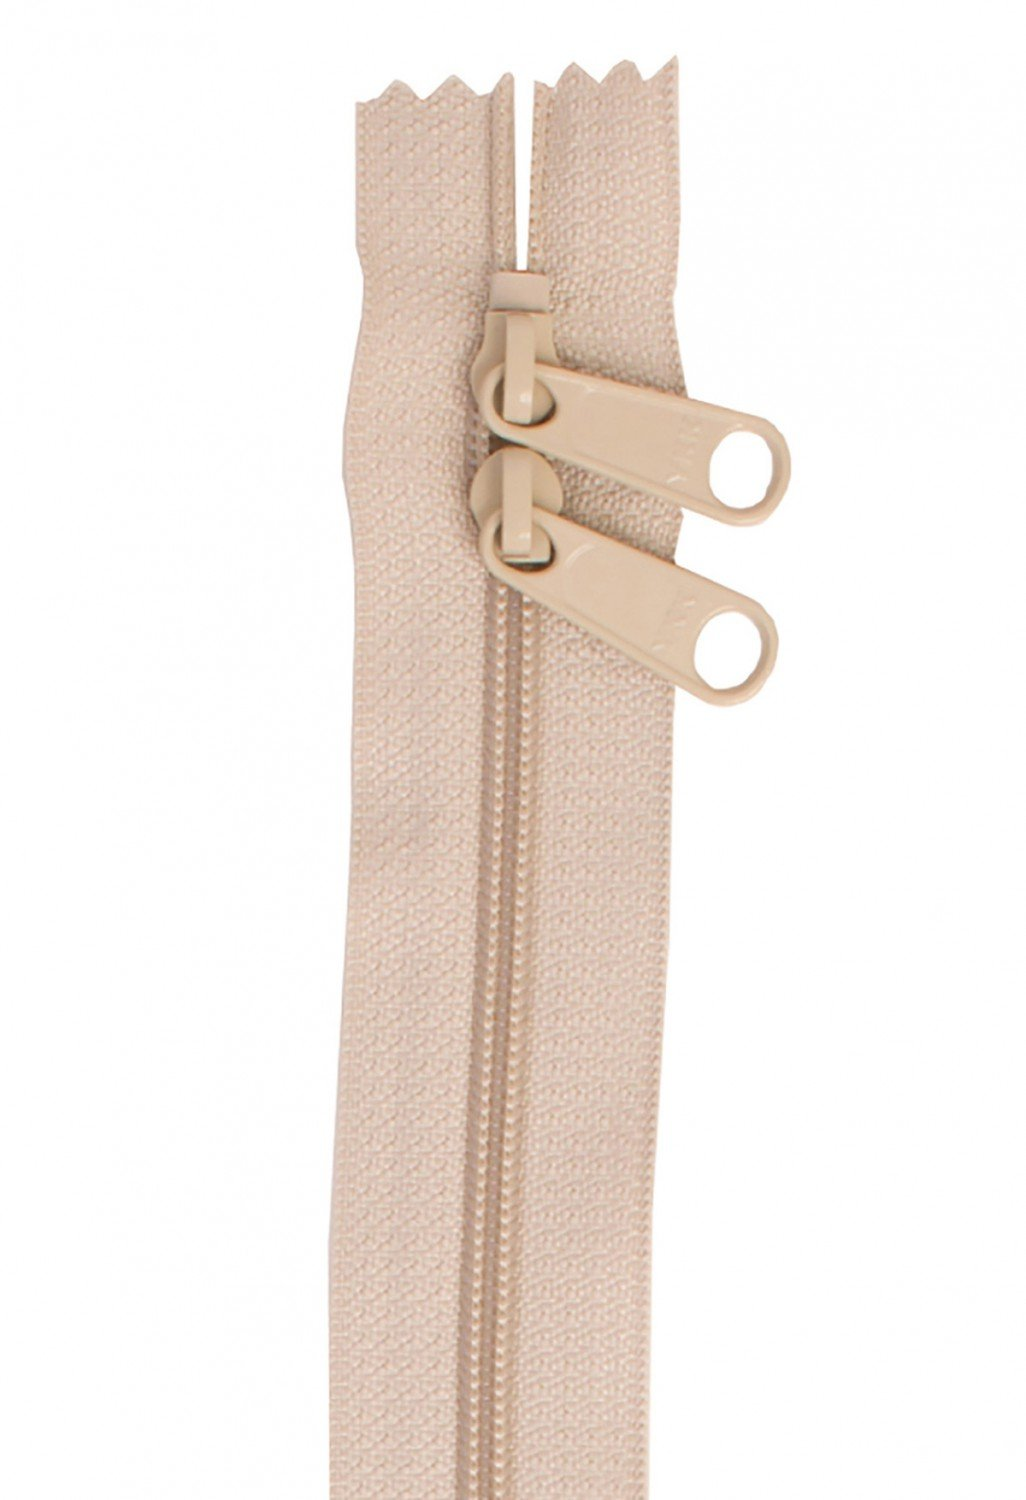 Annie's Handbag Zipper - Natural